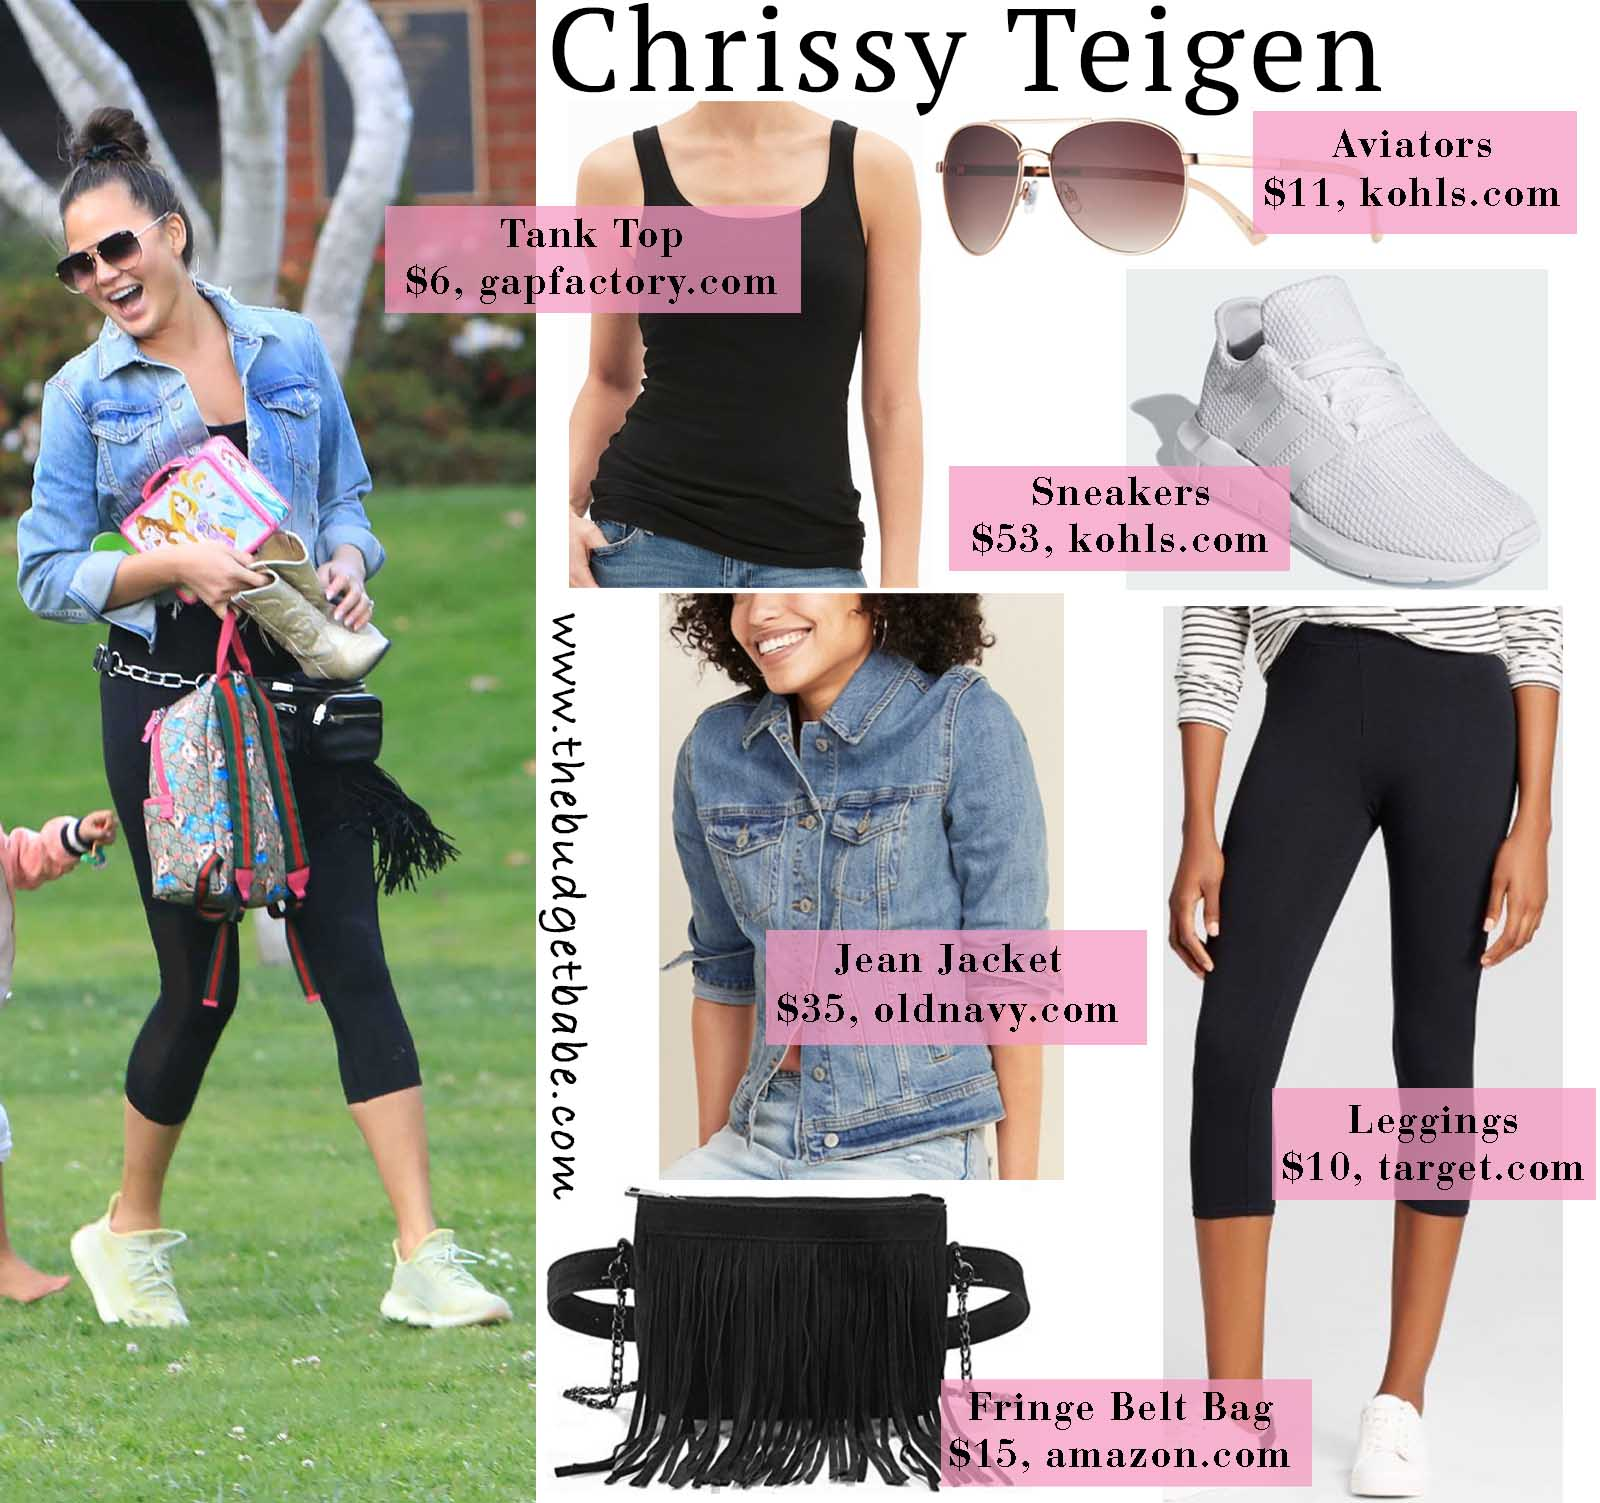 Chrissy Teigen is casual chic in this fun outfit!